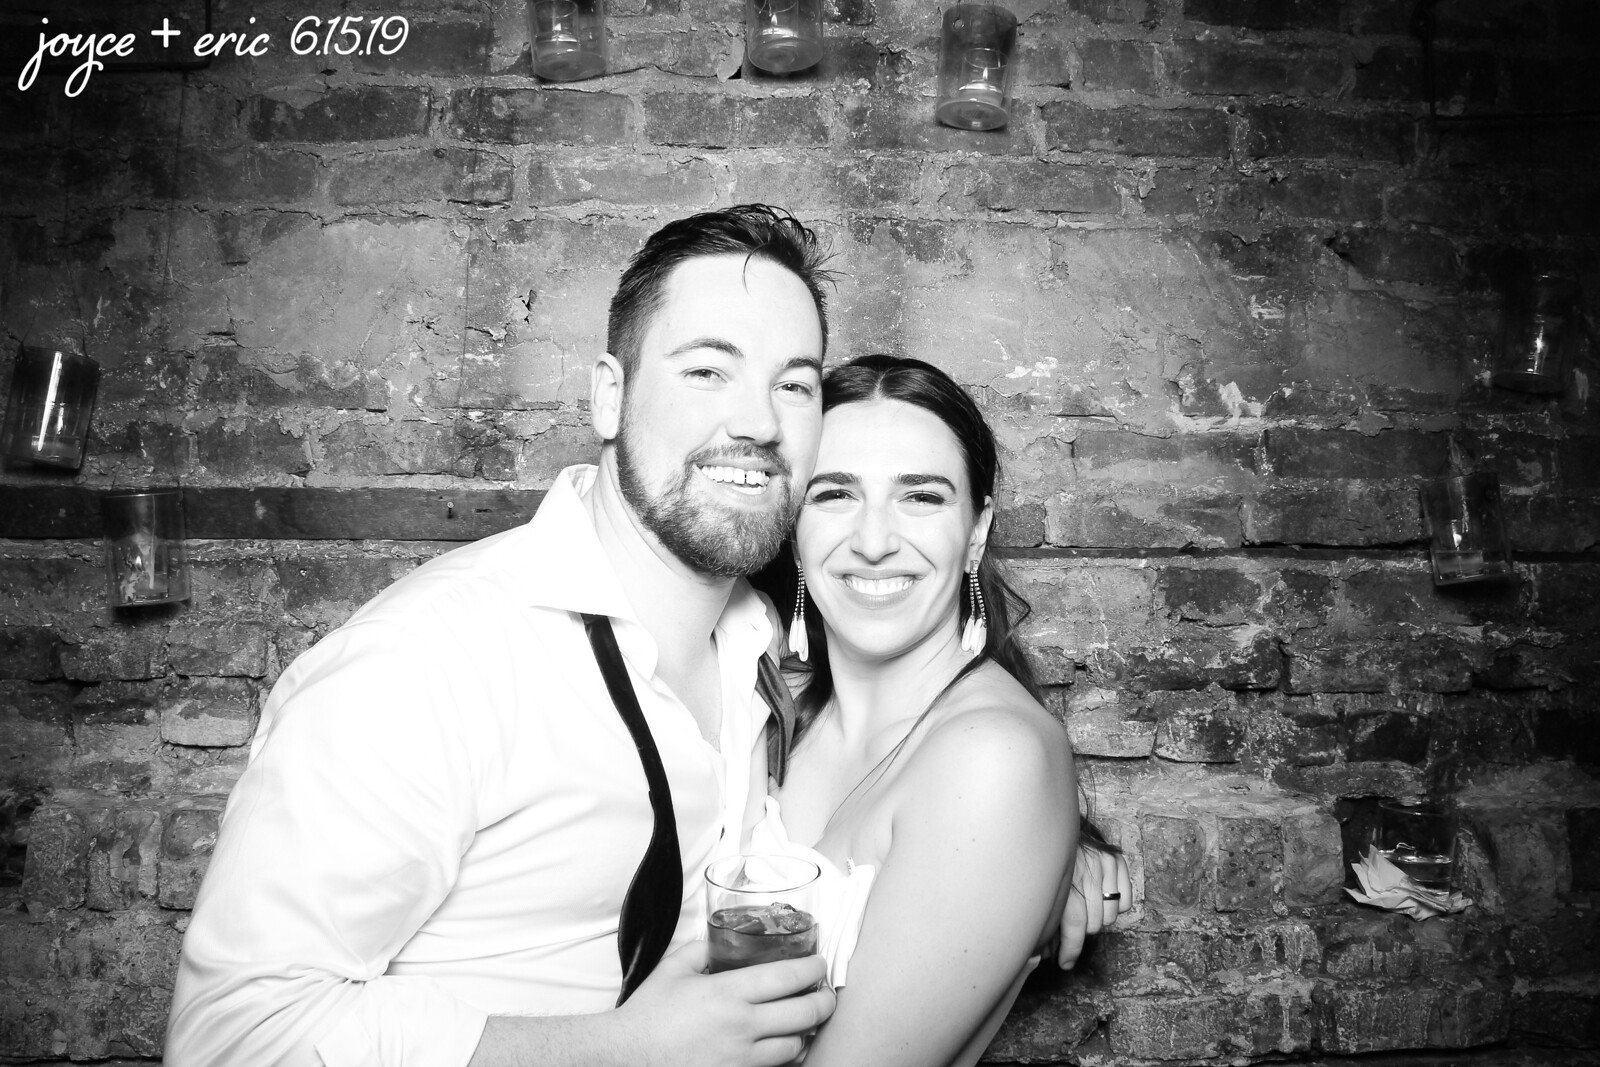 Chicago_Vintage_Wedding_Photobooth_New_Leaf_27.jpg